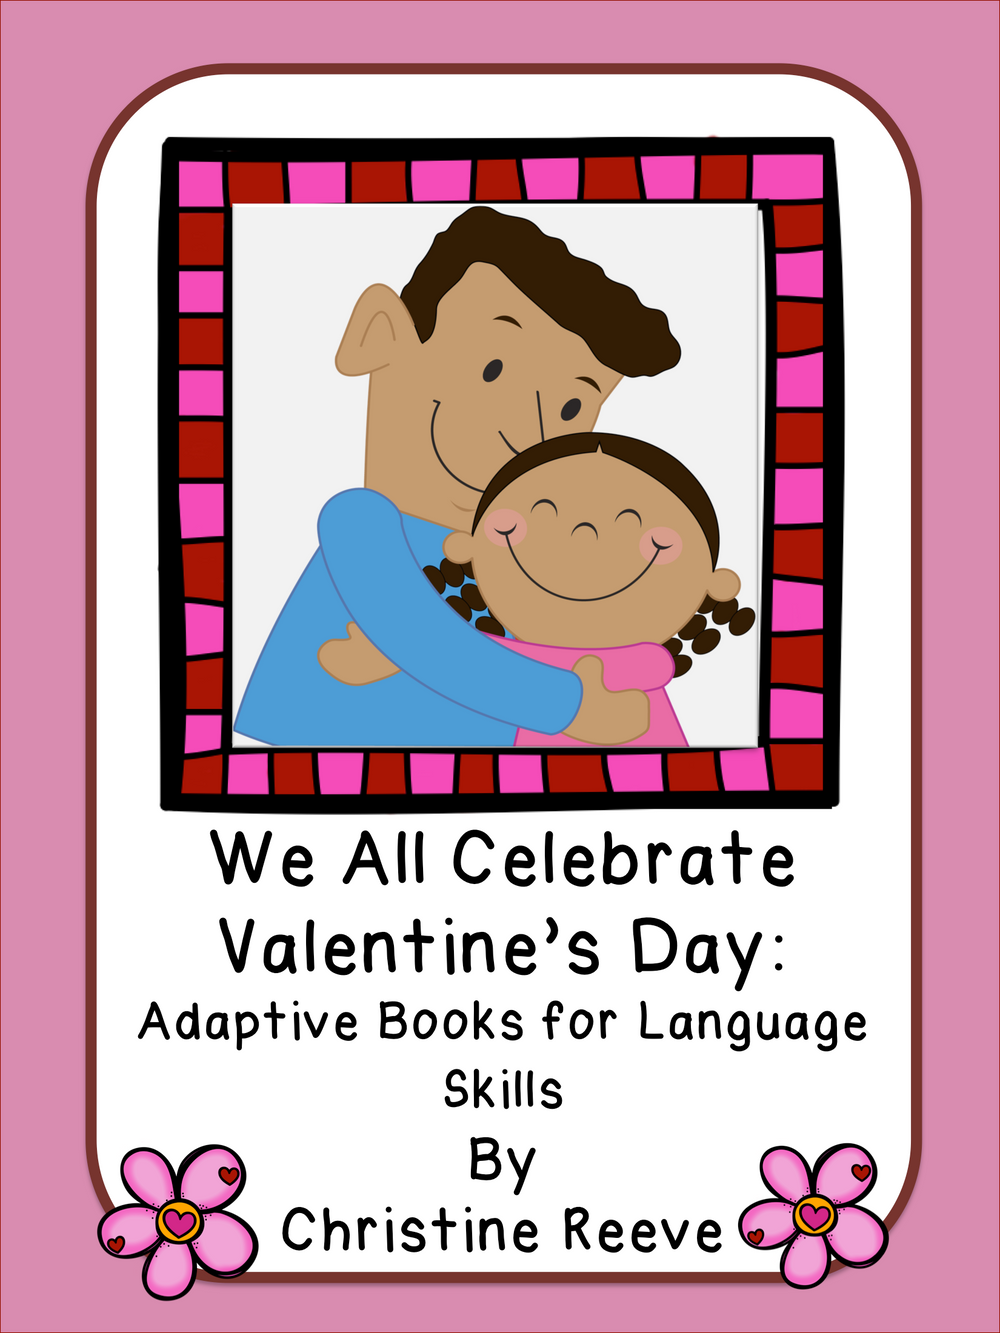 Valentine's Day Illustrated Adapted Books for Language (Autism; Special Ed) - Autism Classroom Resources